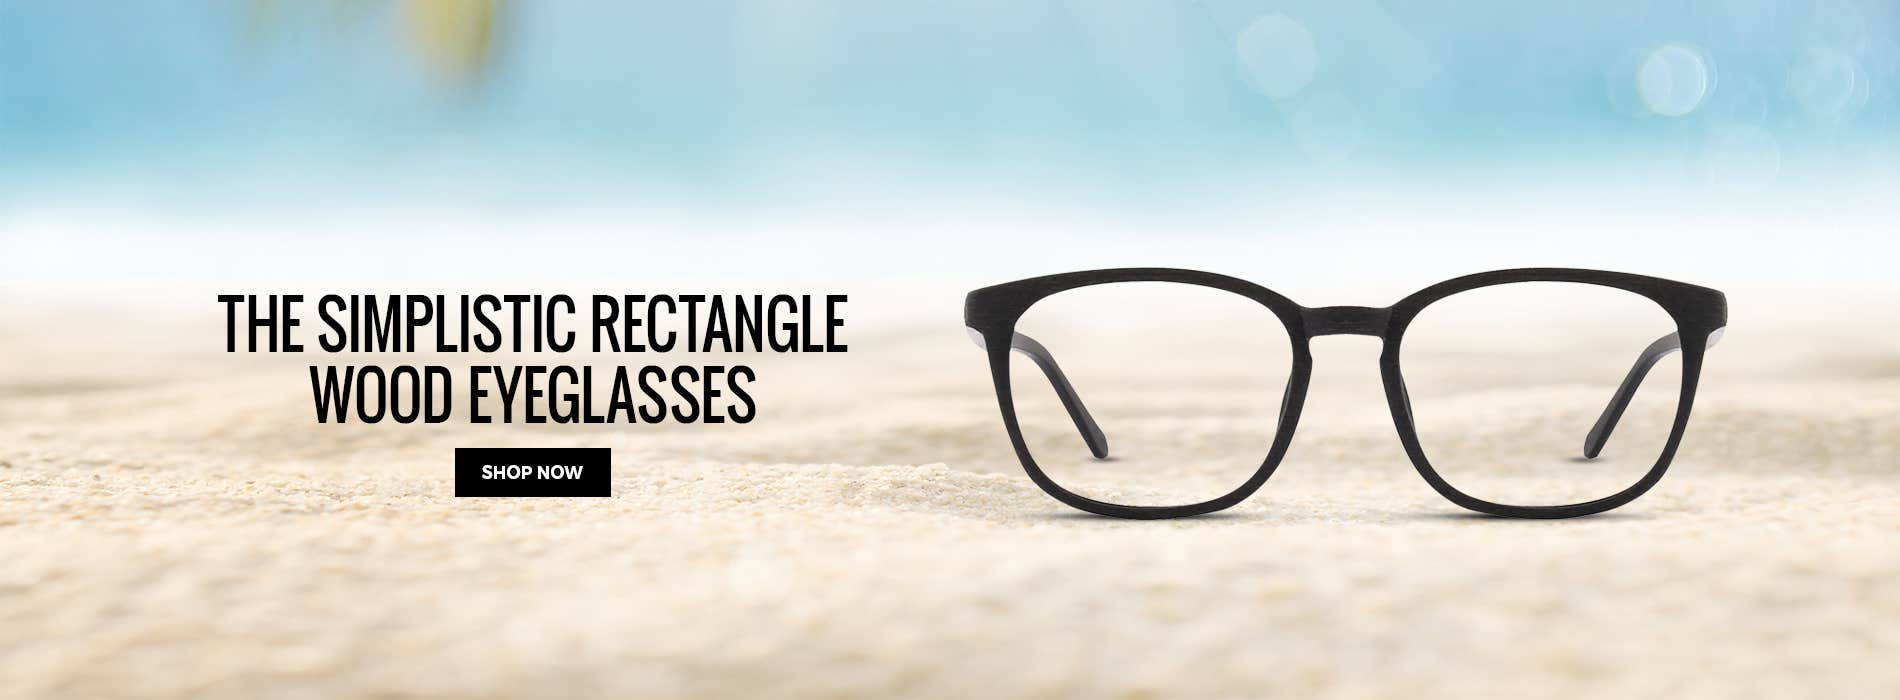 The Simplistic Rectangle Eyeglasses